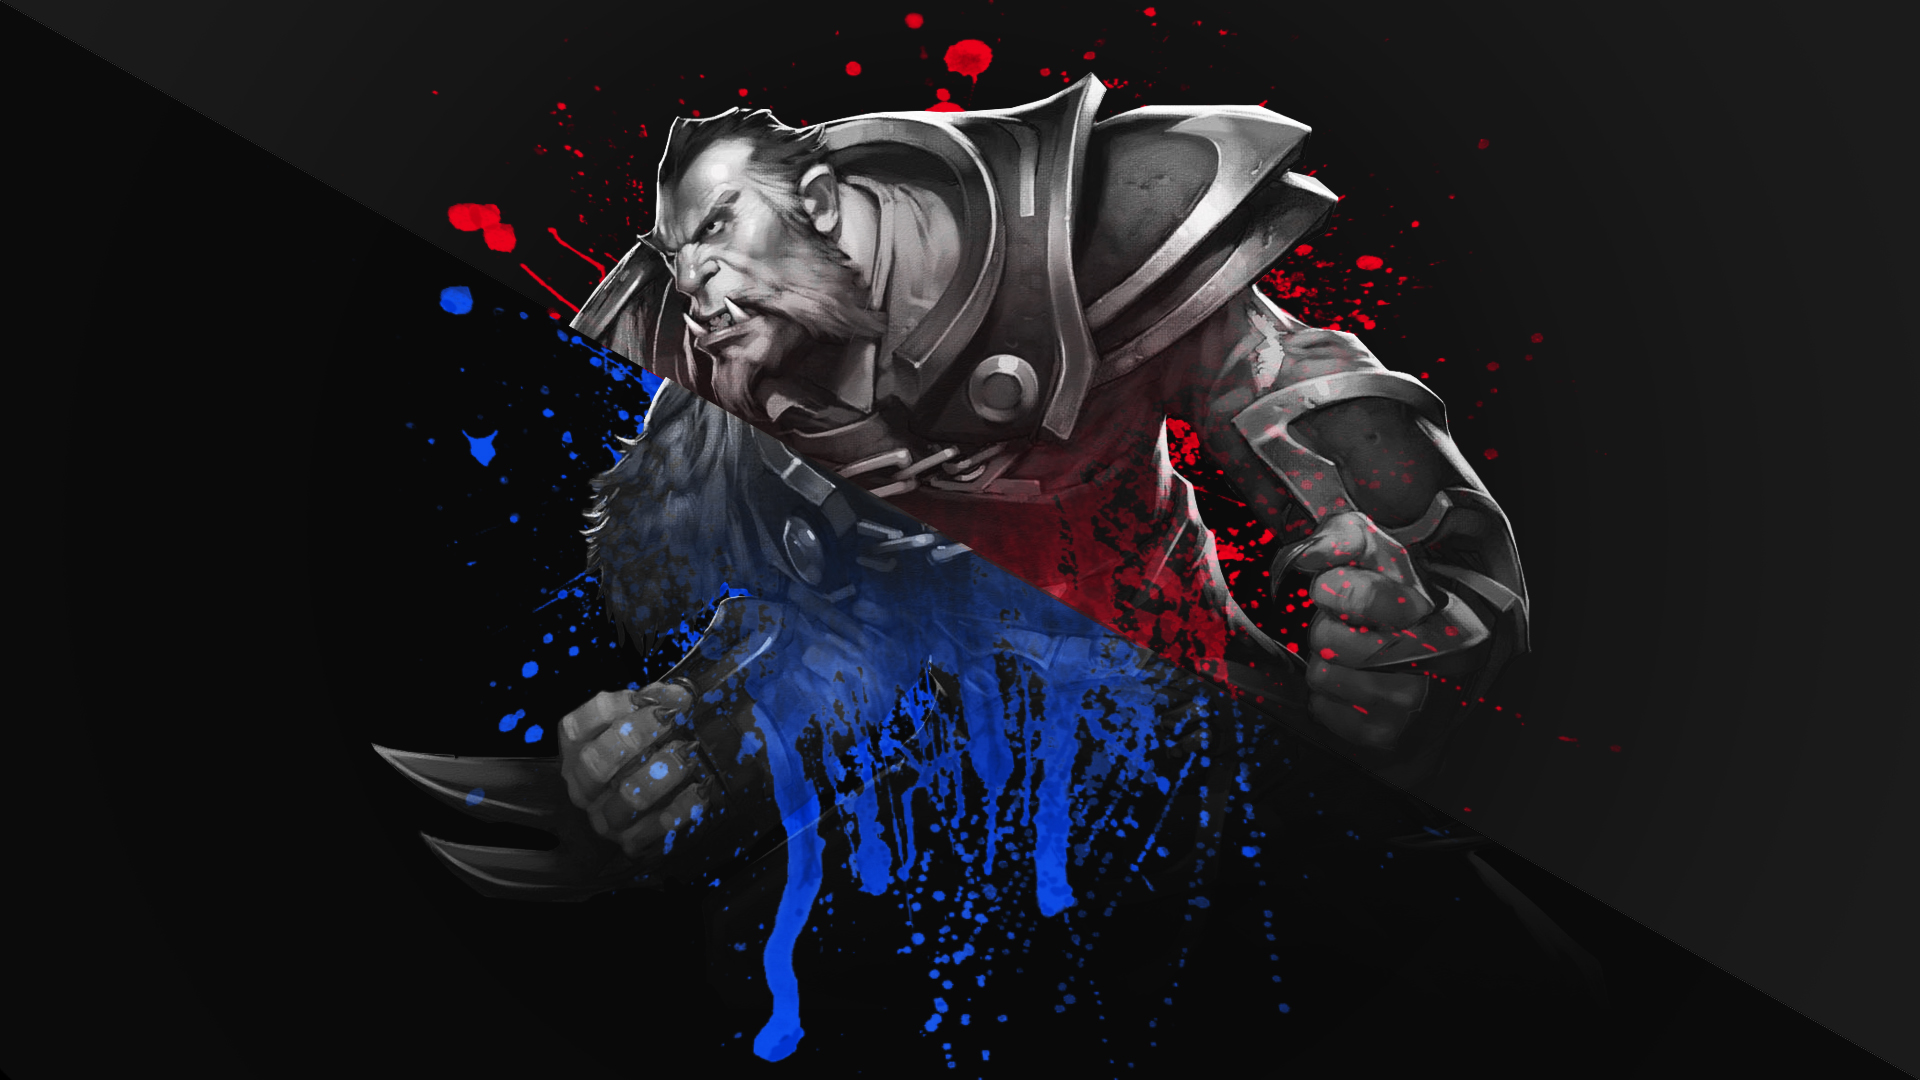 free dota 2 lycan wallpaper 1920x1080 by dandapixel on deviantart